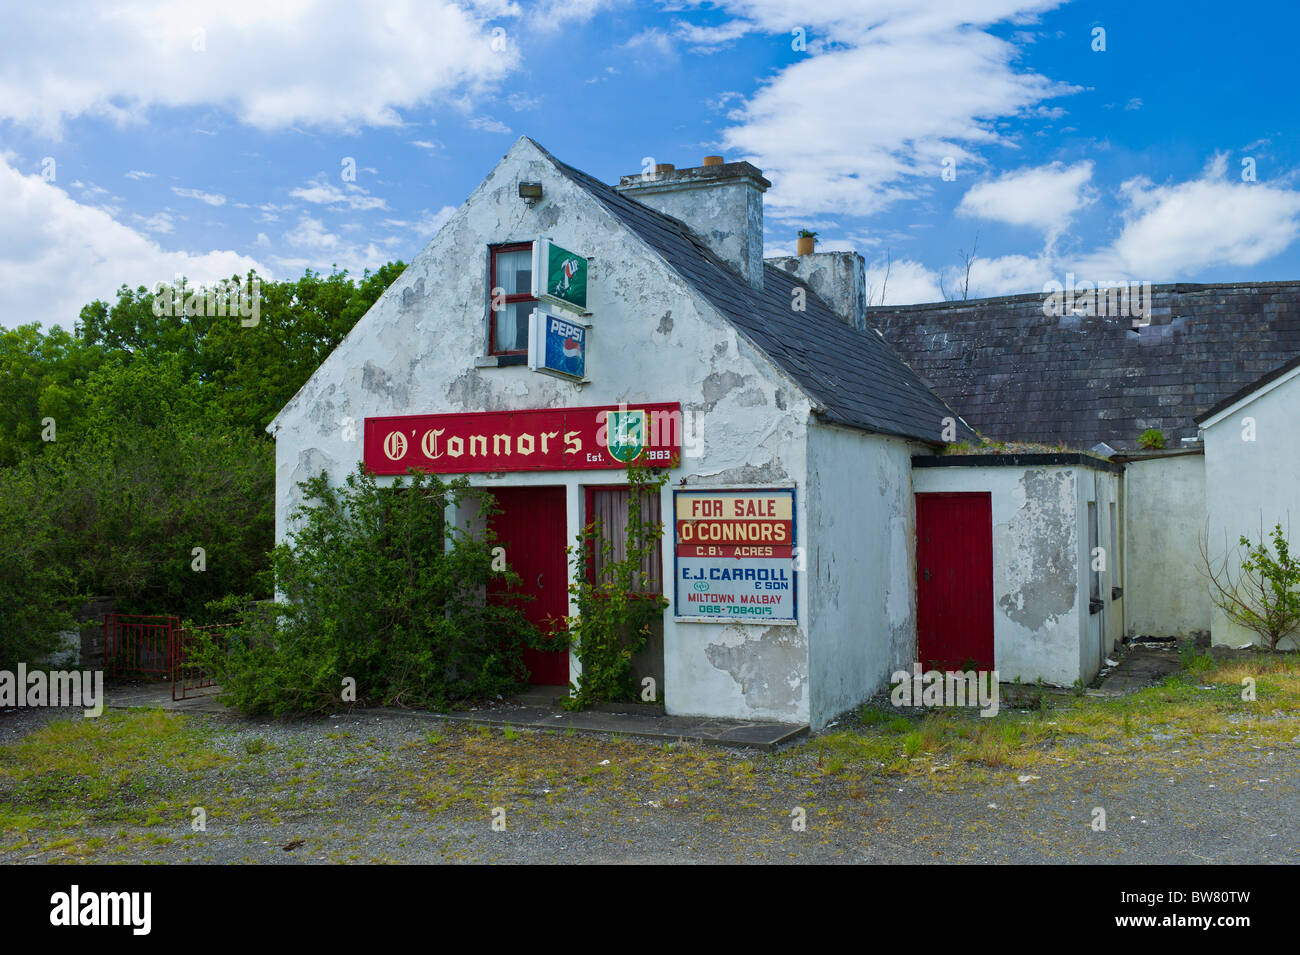 O'Connors disused shop business for sale at Annageragh near Creegh, County Clare, Ireland - Stock Image